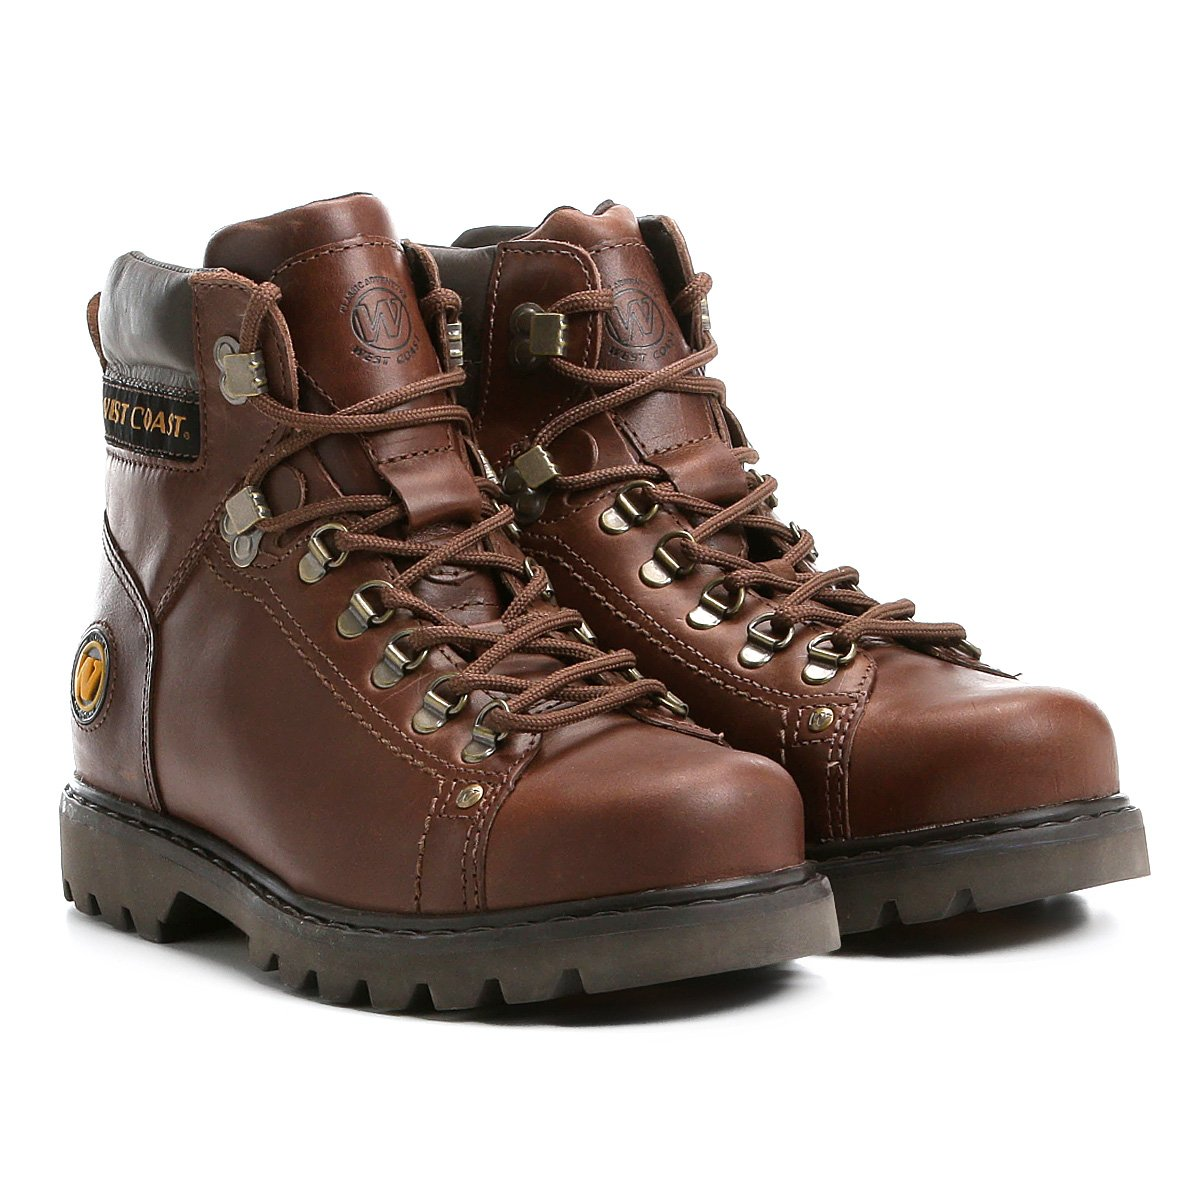 21a450629 Bota couro coturno cano curto west coast worker masculina café jpg 544x544 West  coast worker